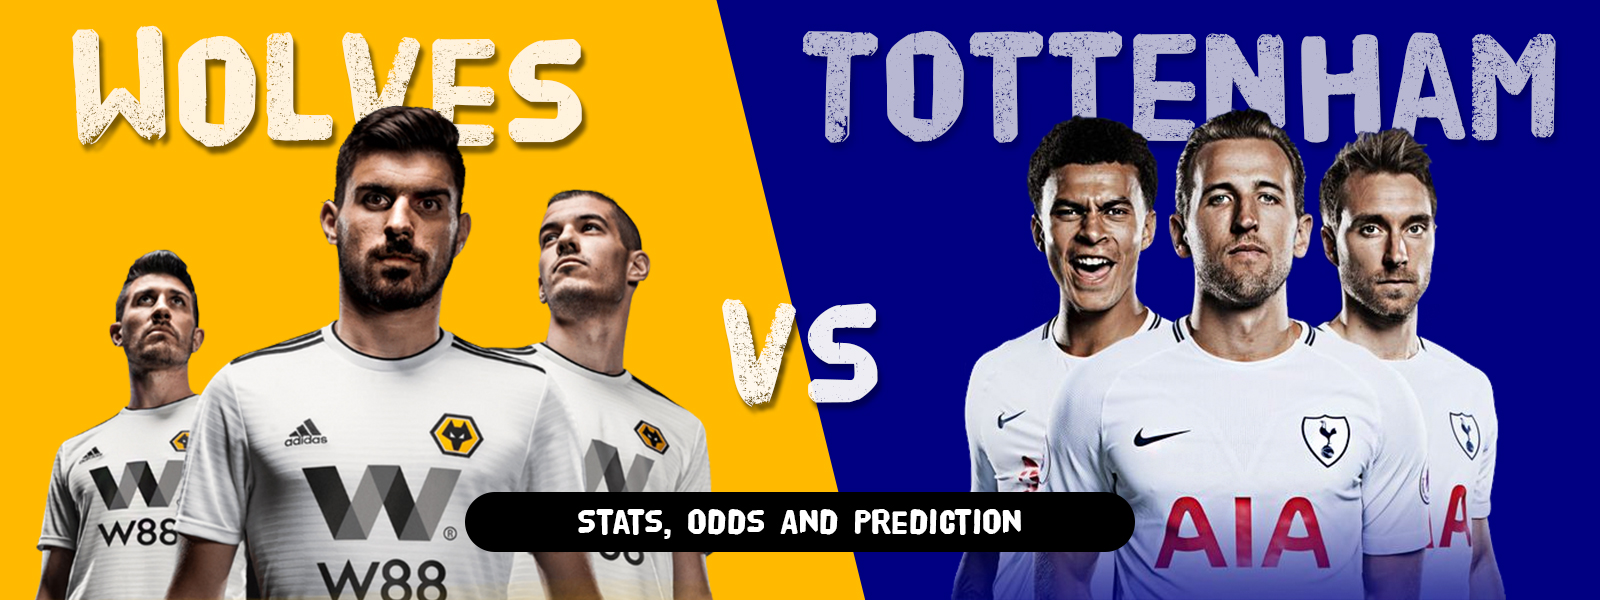 Wolves vs Tottenham: Stats, Odds And Prediction